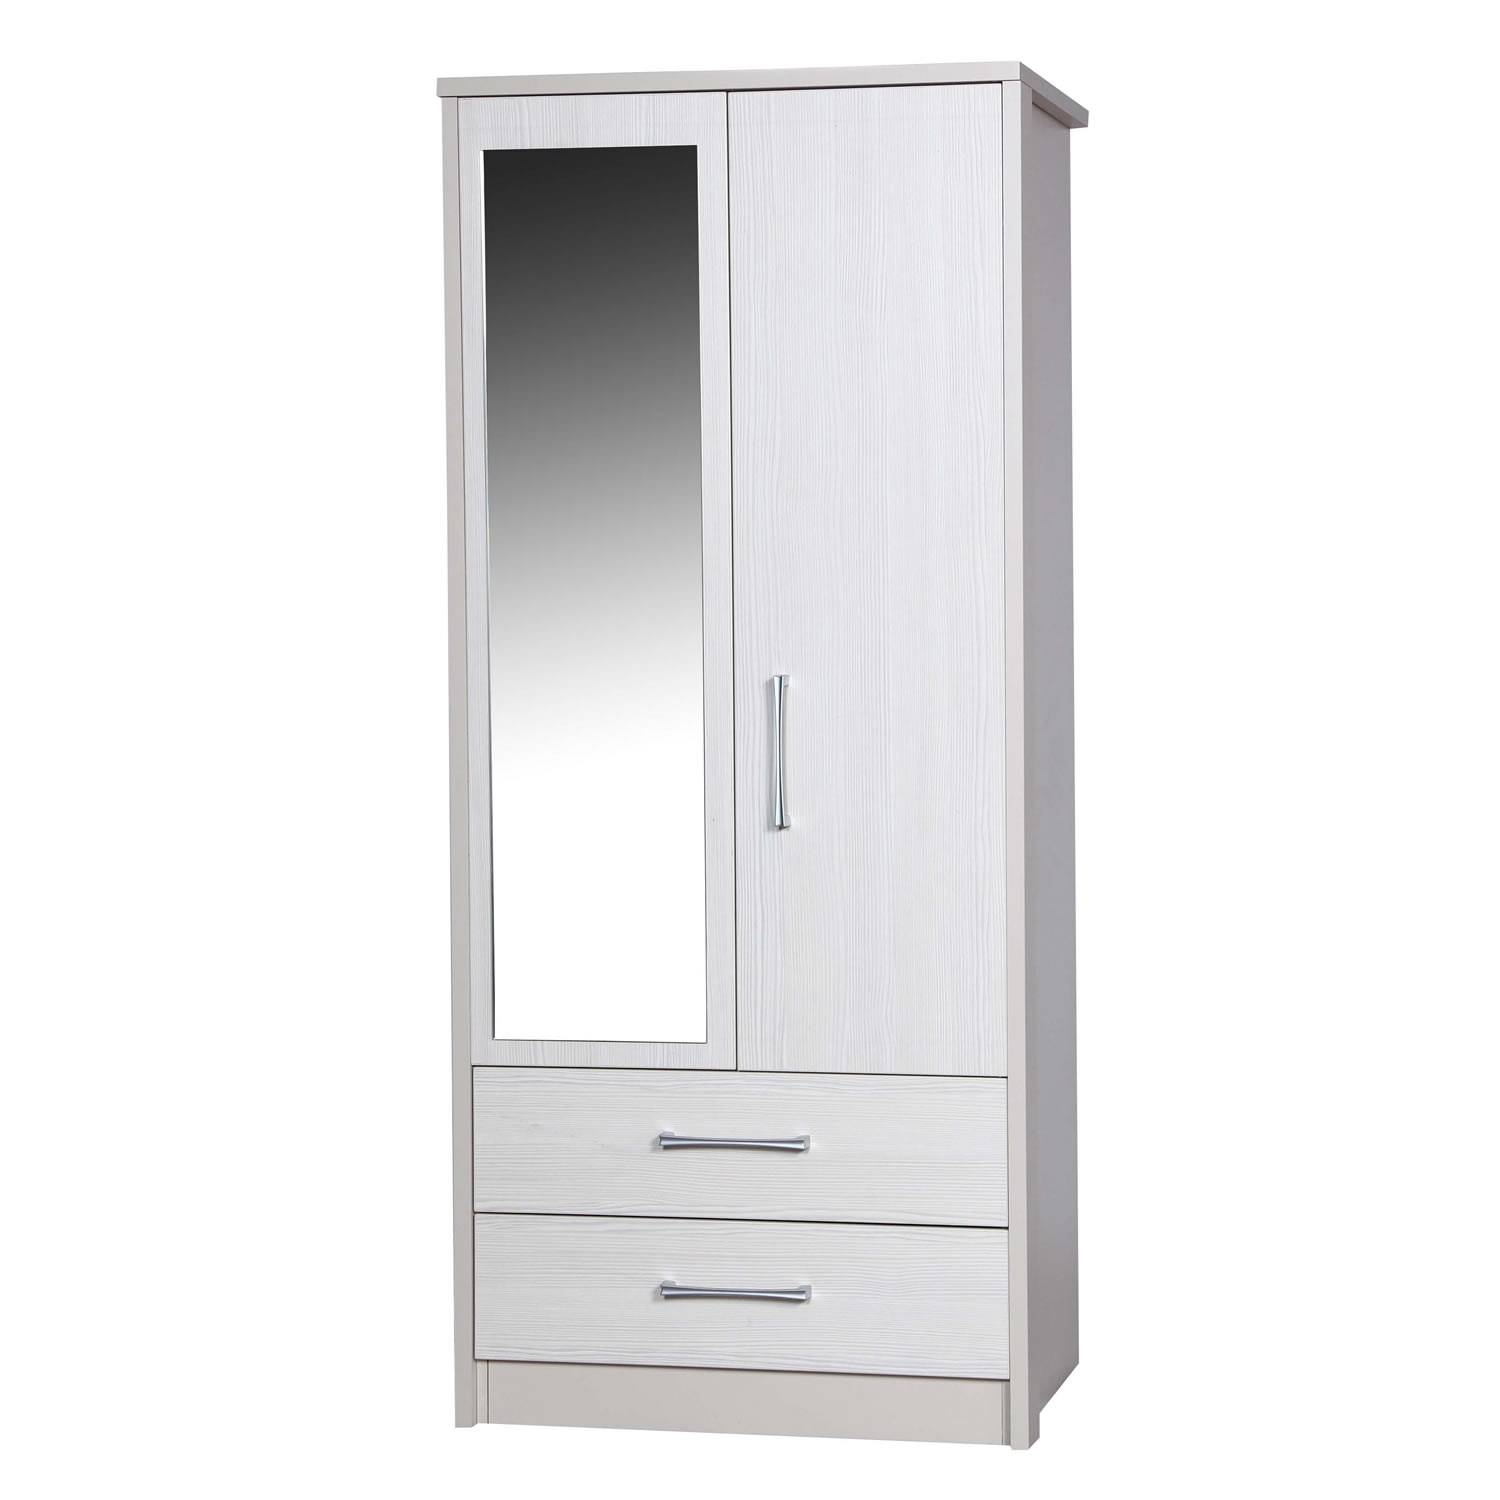 Avola White 2 Door 2 Drawer Combi Wardrobe With Mirror – Next Day intended for Wardrobes With Mirror and Drawers (Image 2 of 15)